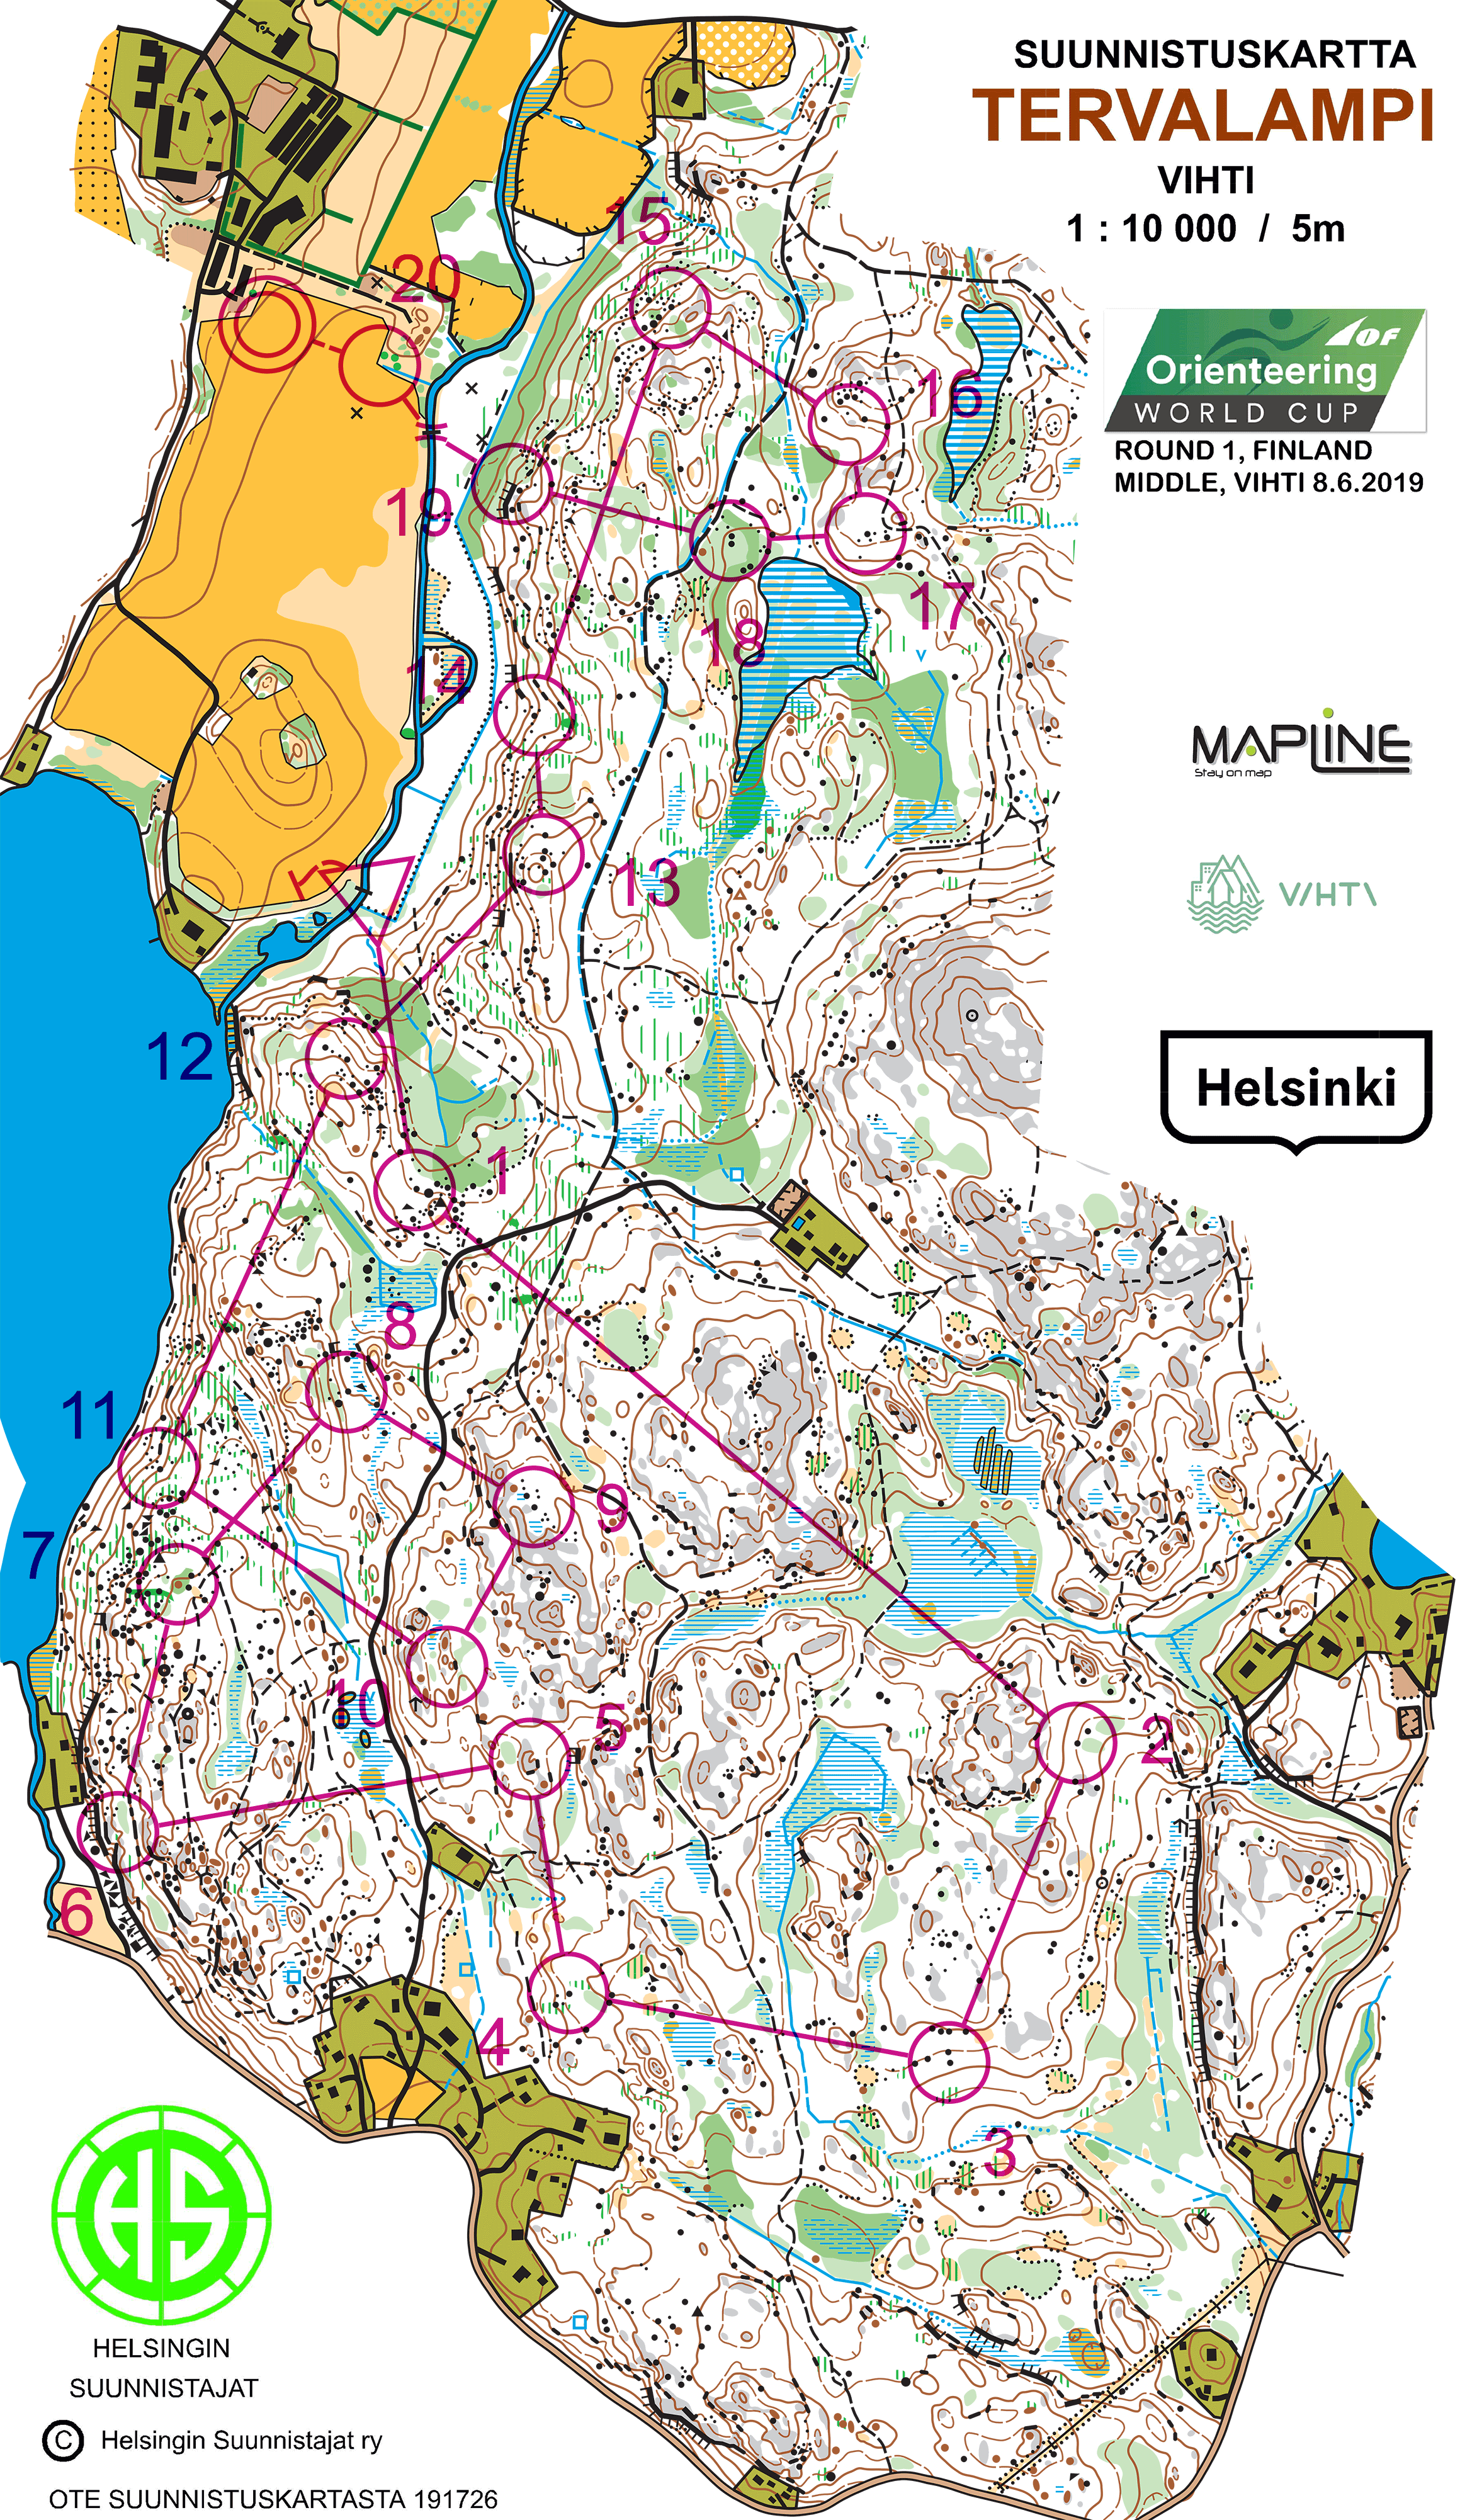 World Cup Finland 2019: Maps and Results | World of O News